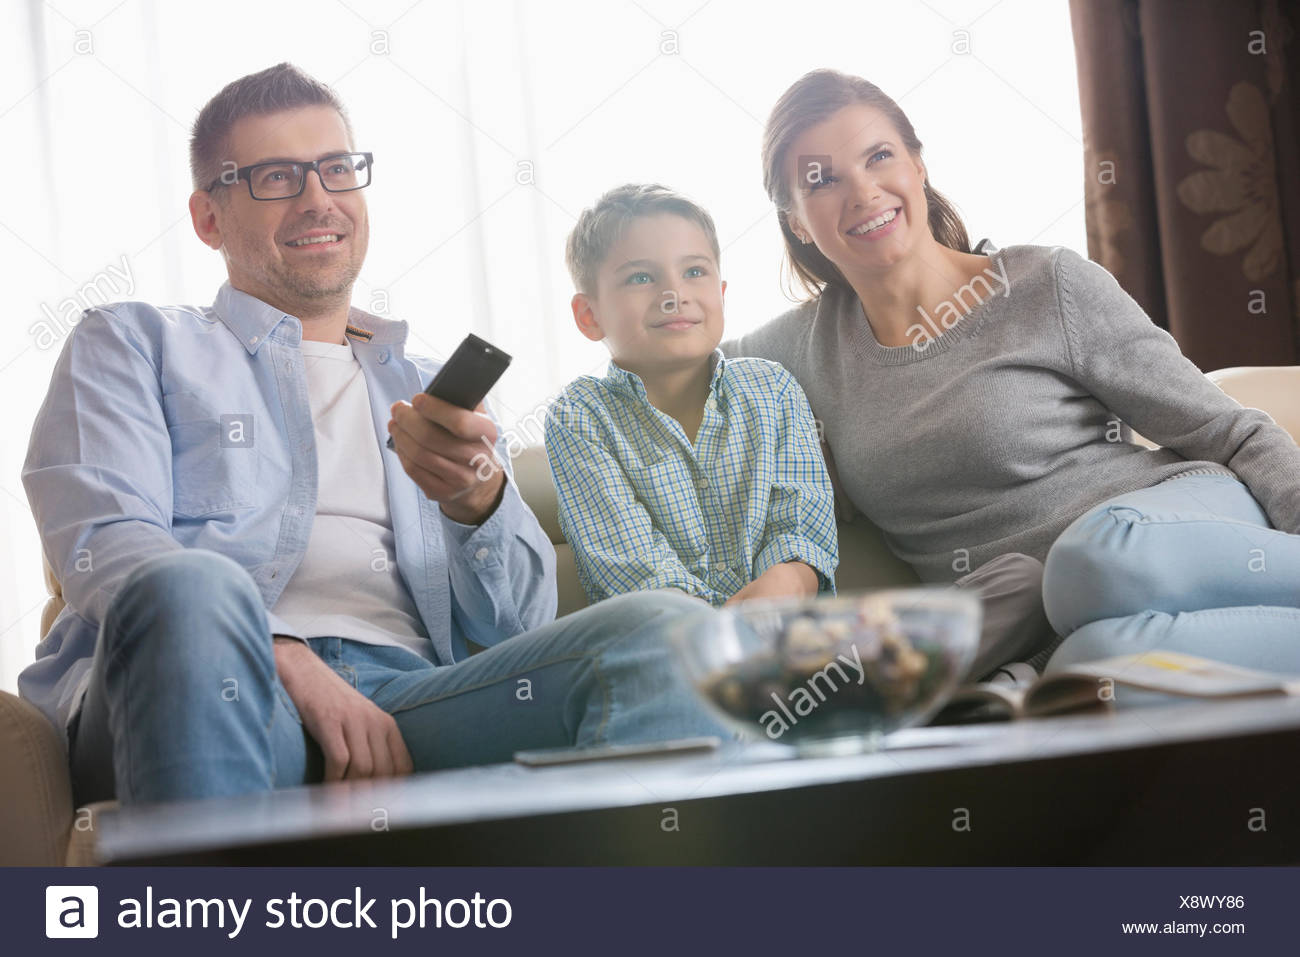 Boy watching TV with parents in living room - Stock Image